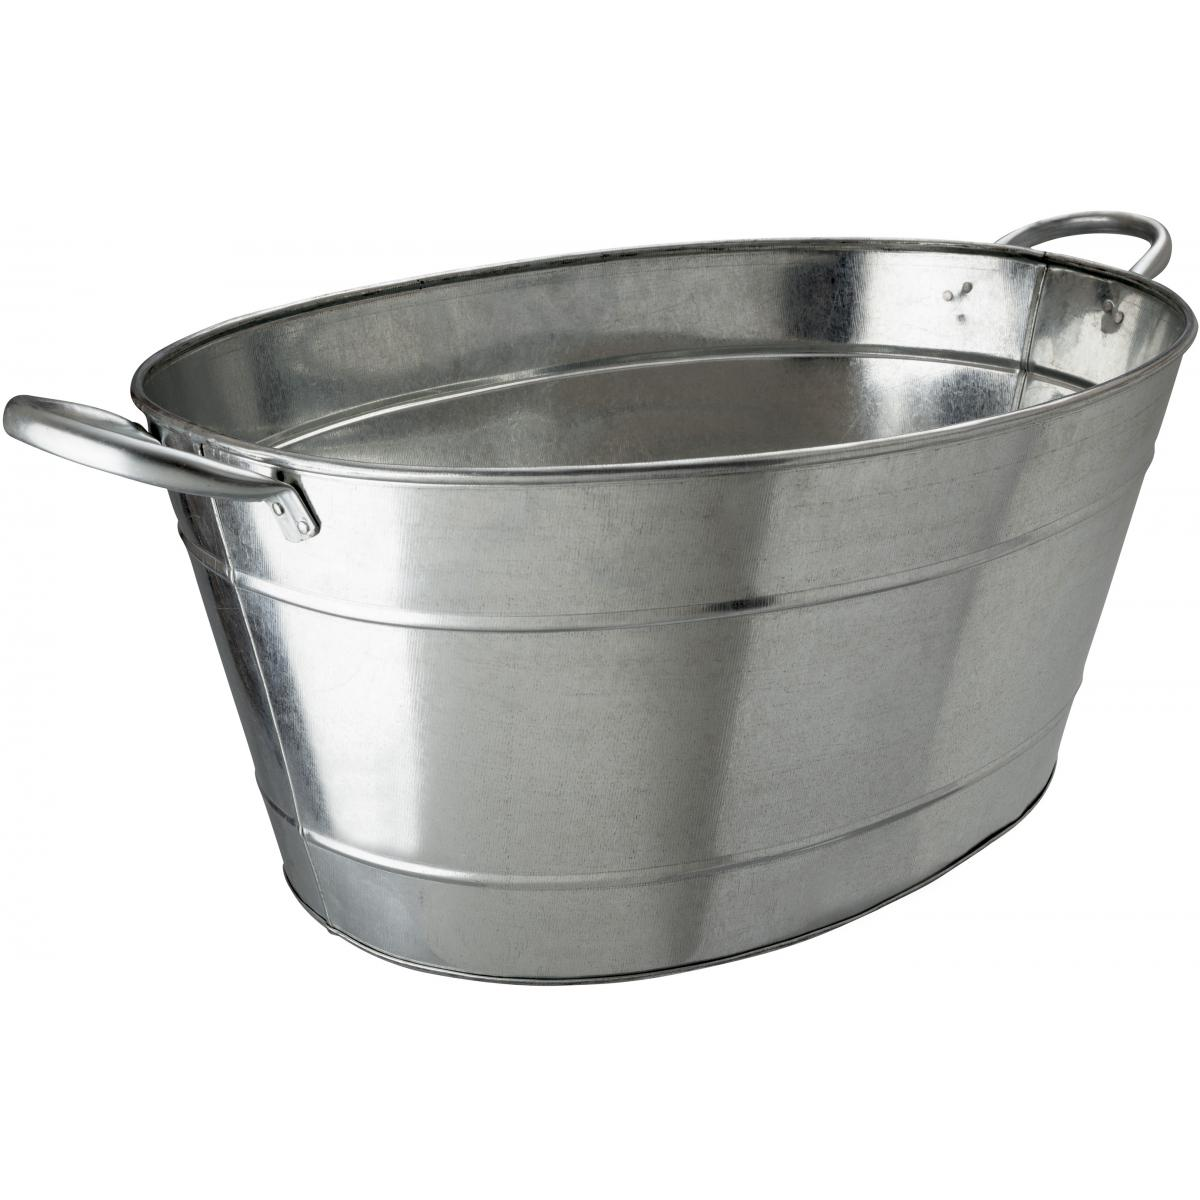 Galvanized steel oval beverage tub noble express for Oval tub sizes